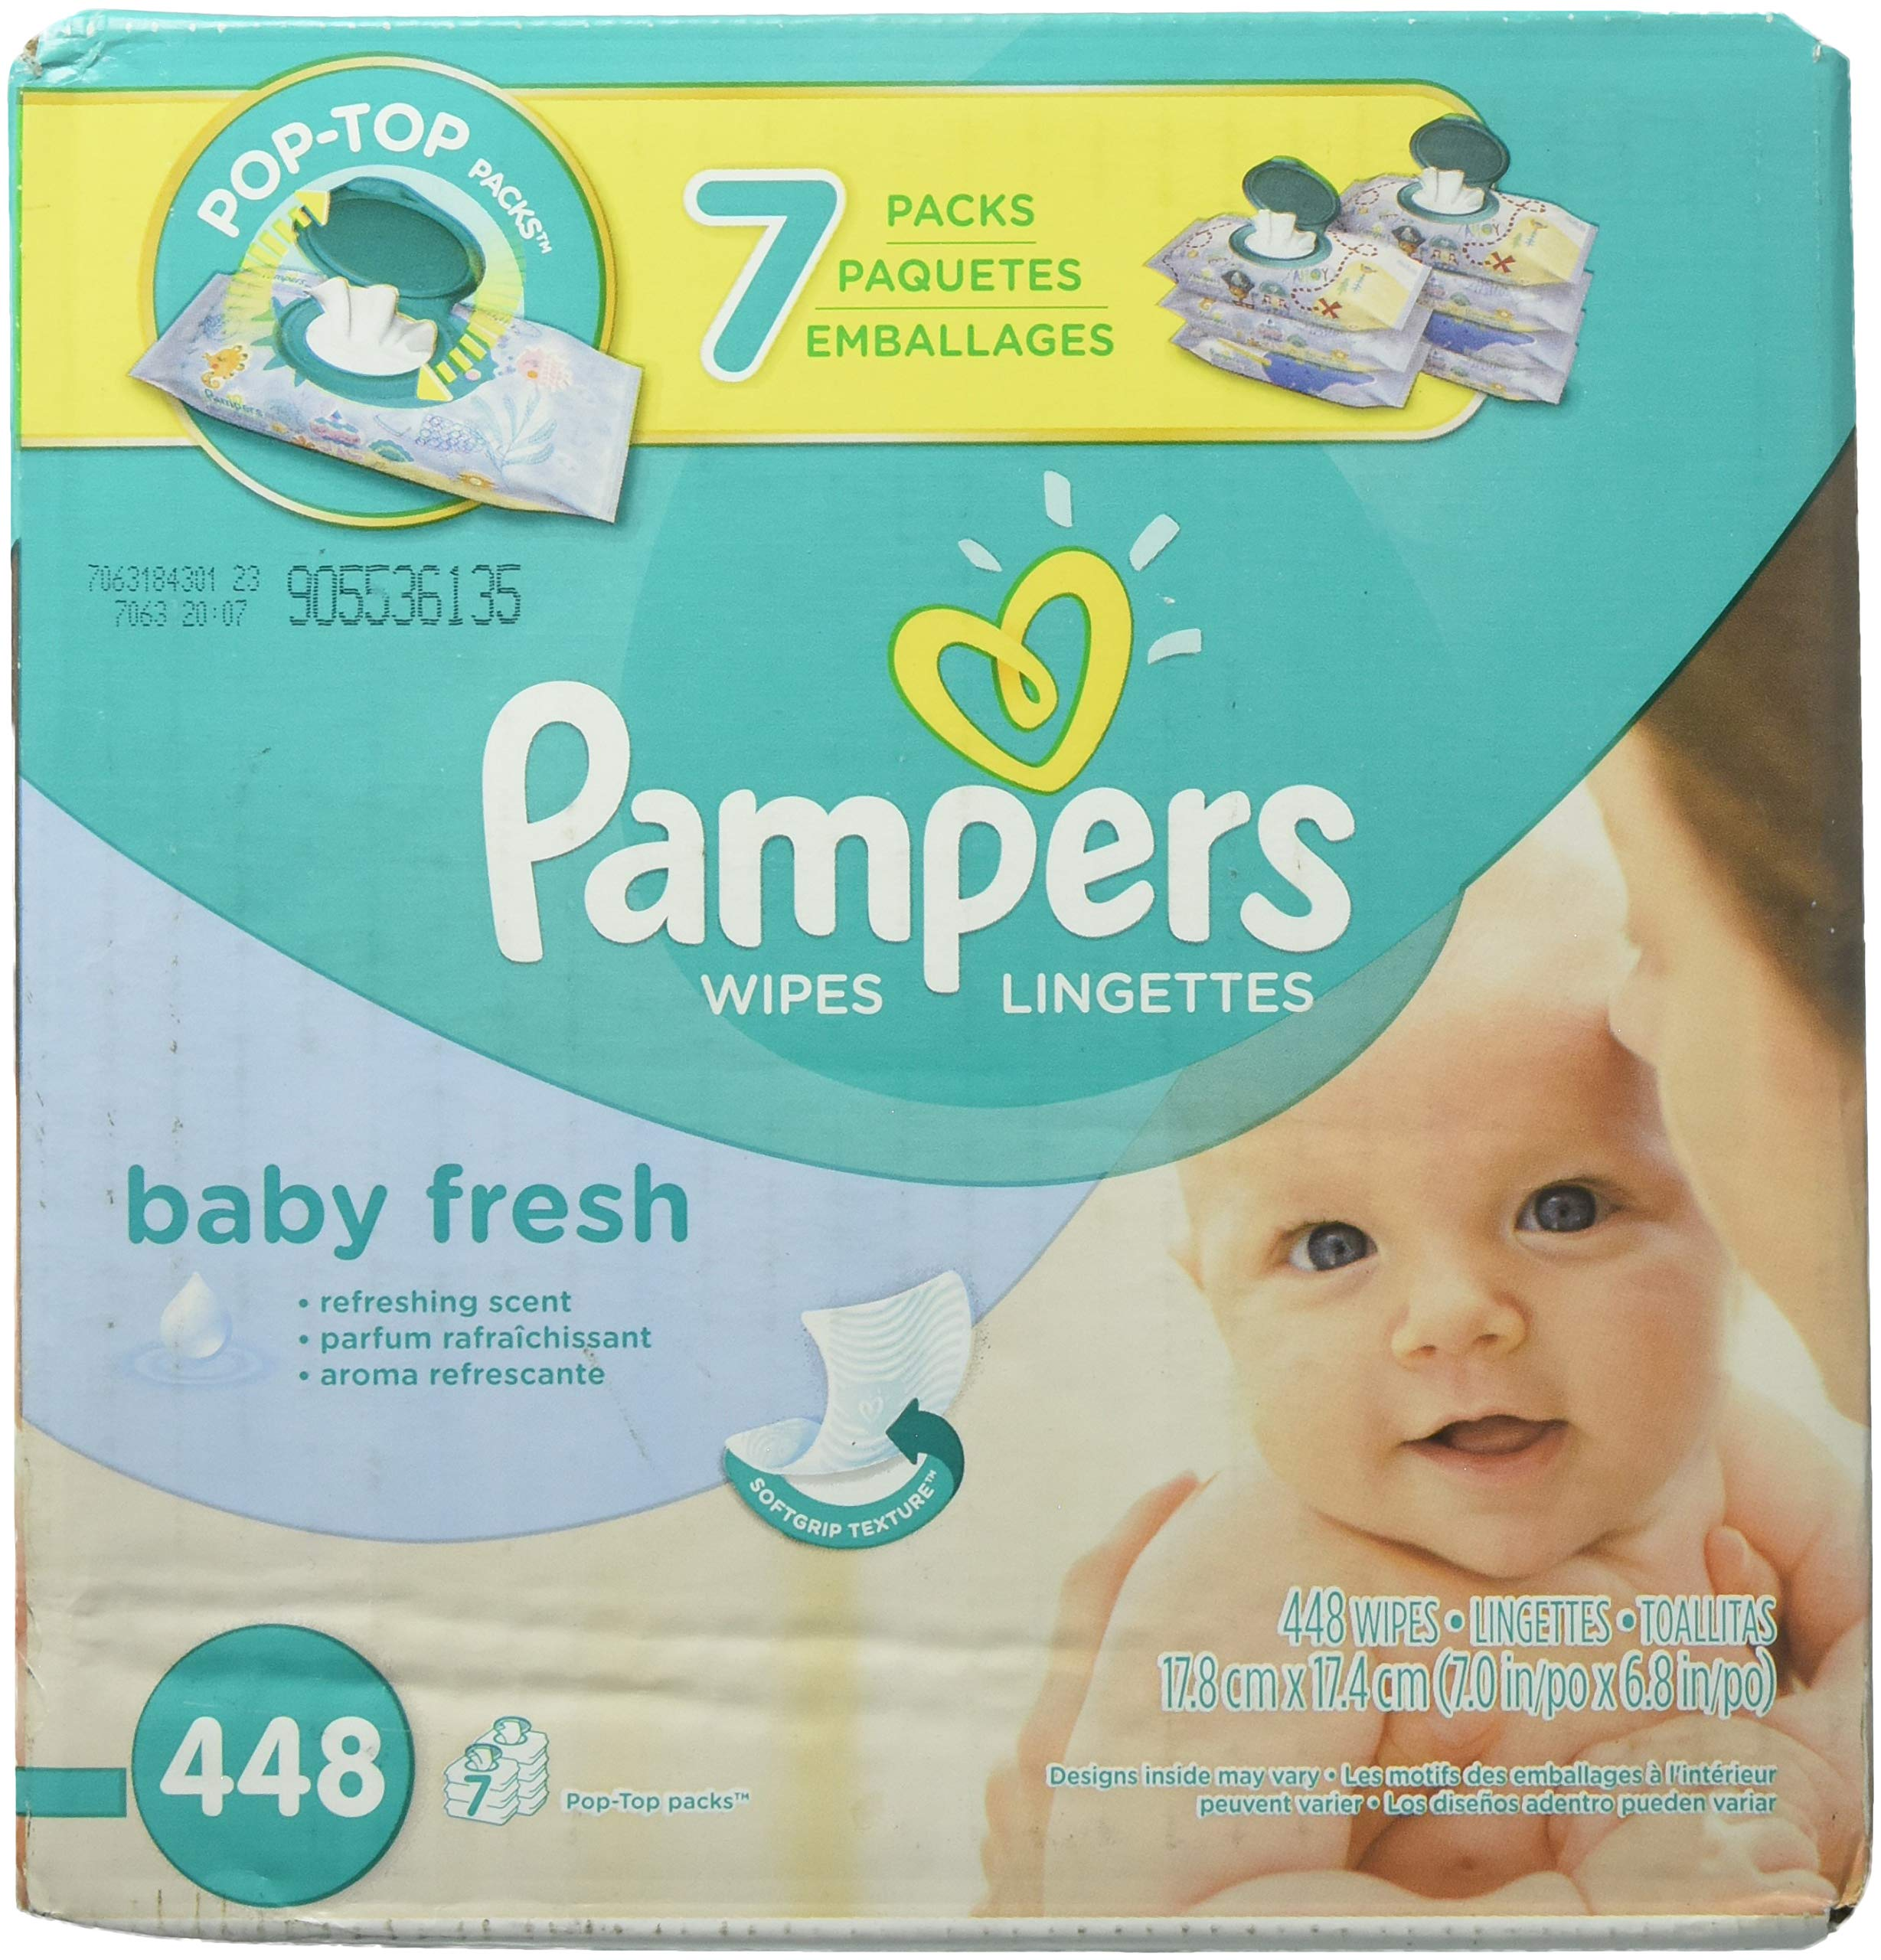 Pampers Baby Fresh Baby Wipes 7x Pop-top Pack – 448 Count